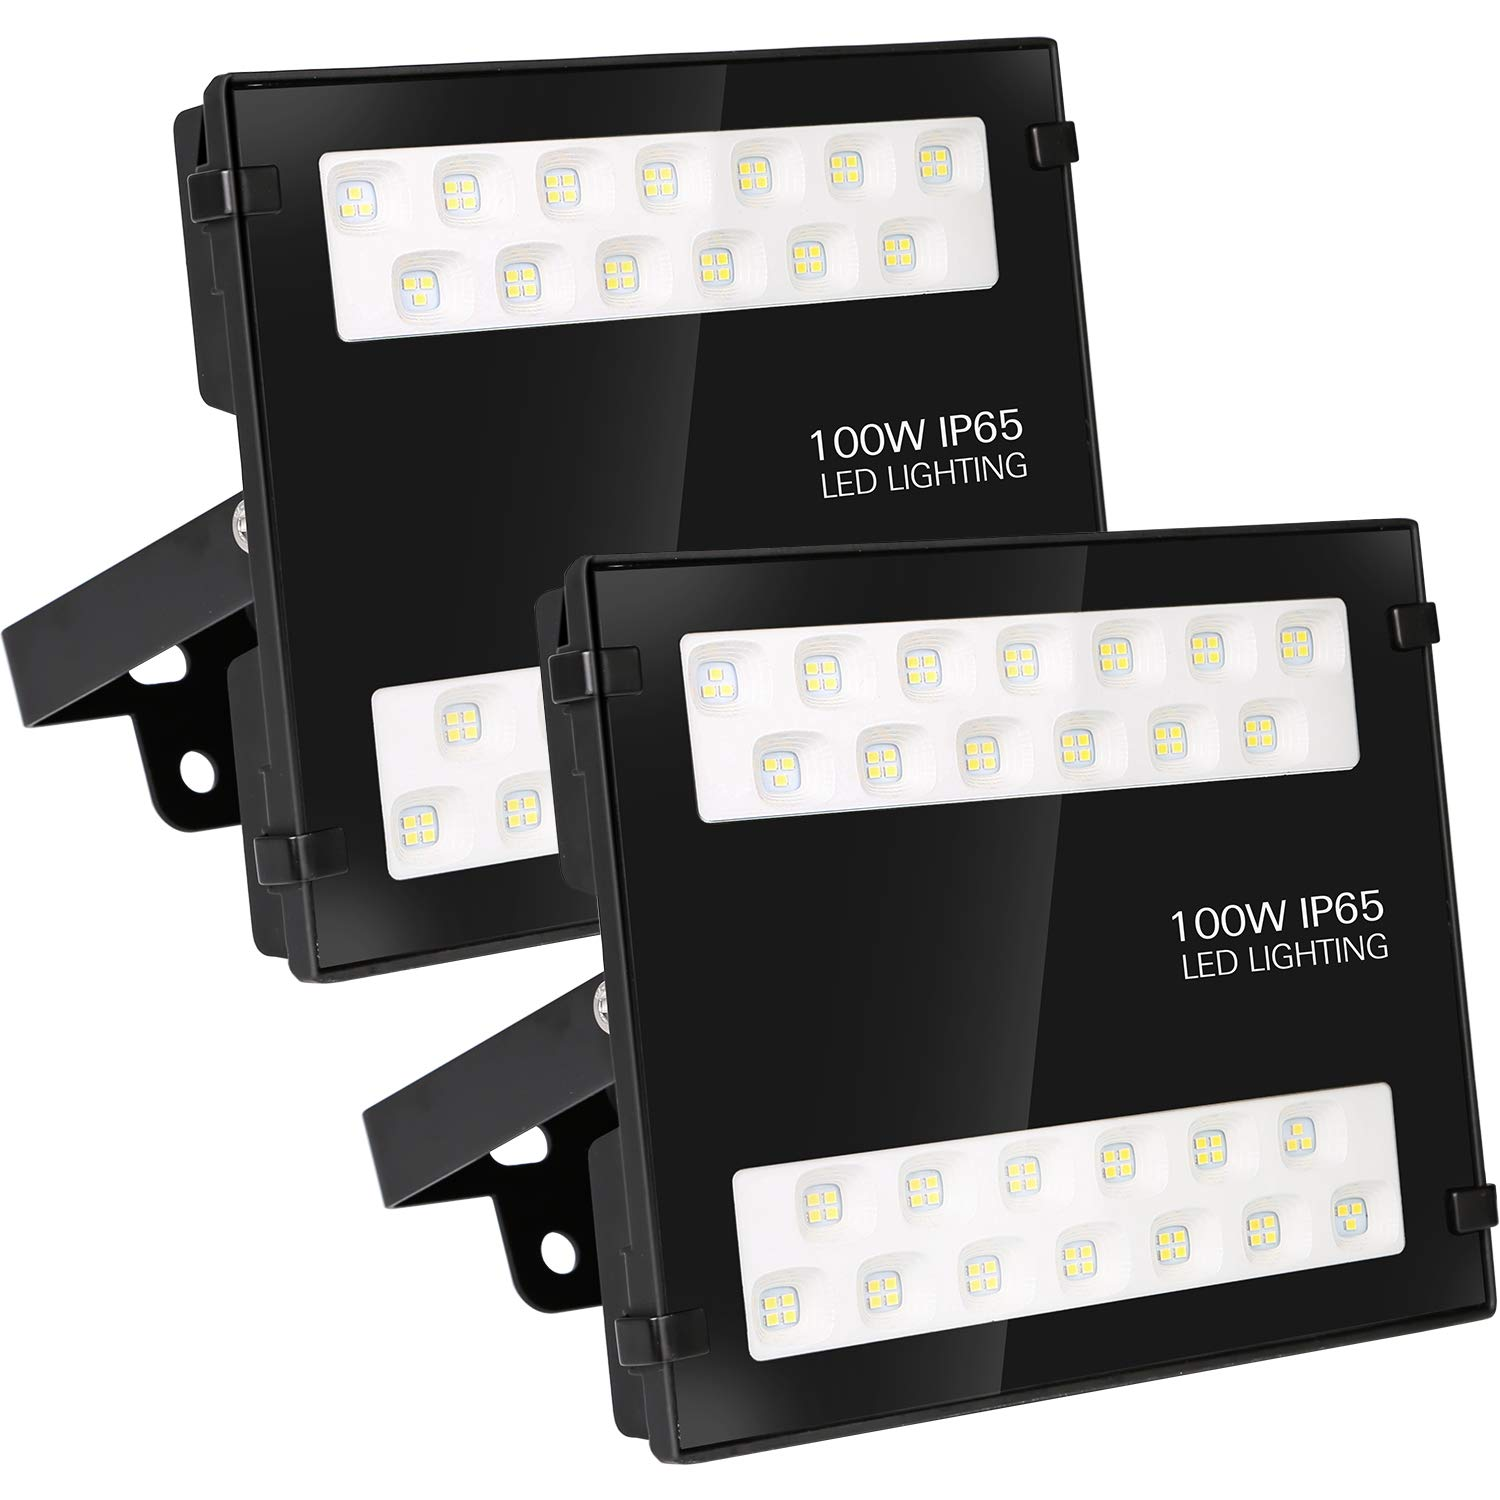 Hykolity 100W LED Security Flood Light,10000lm Outdoor Commercial LED Area Light, Weatherproof Parking Lot Lighting Fixture,5000K Daylight [250W MH Equivalent] - 2 Pack by hykolity